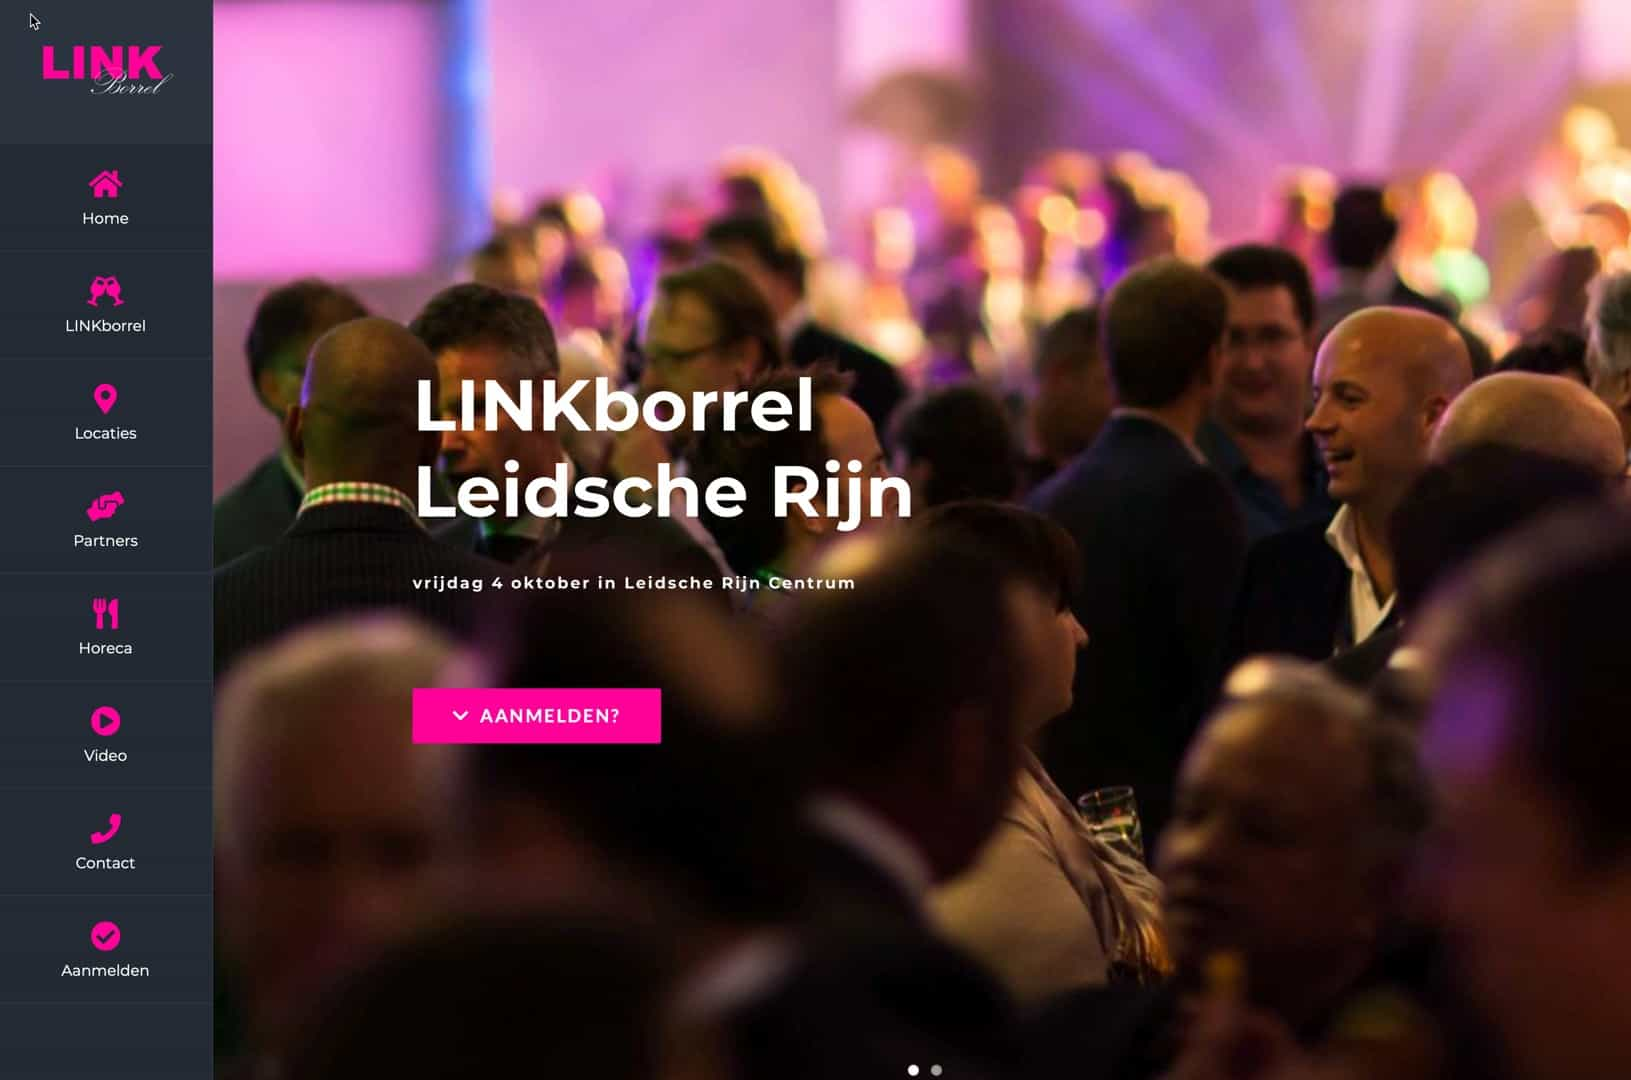 LINKborrel